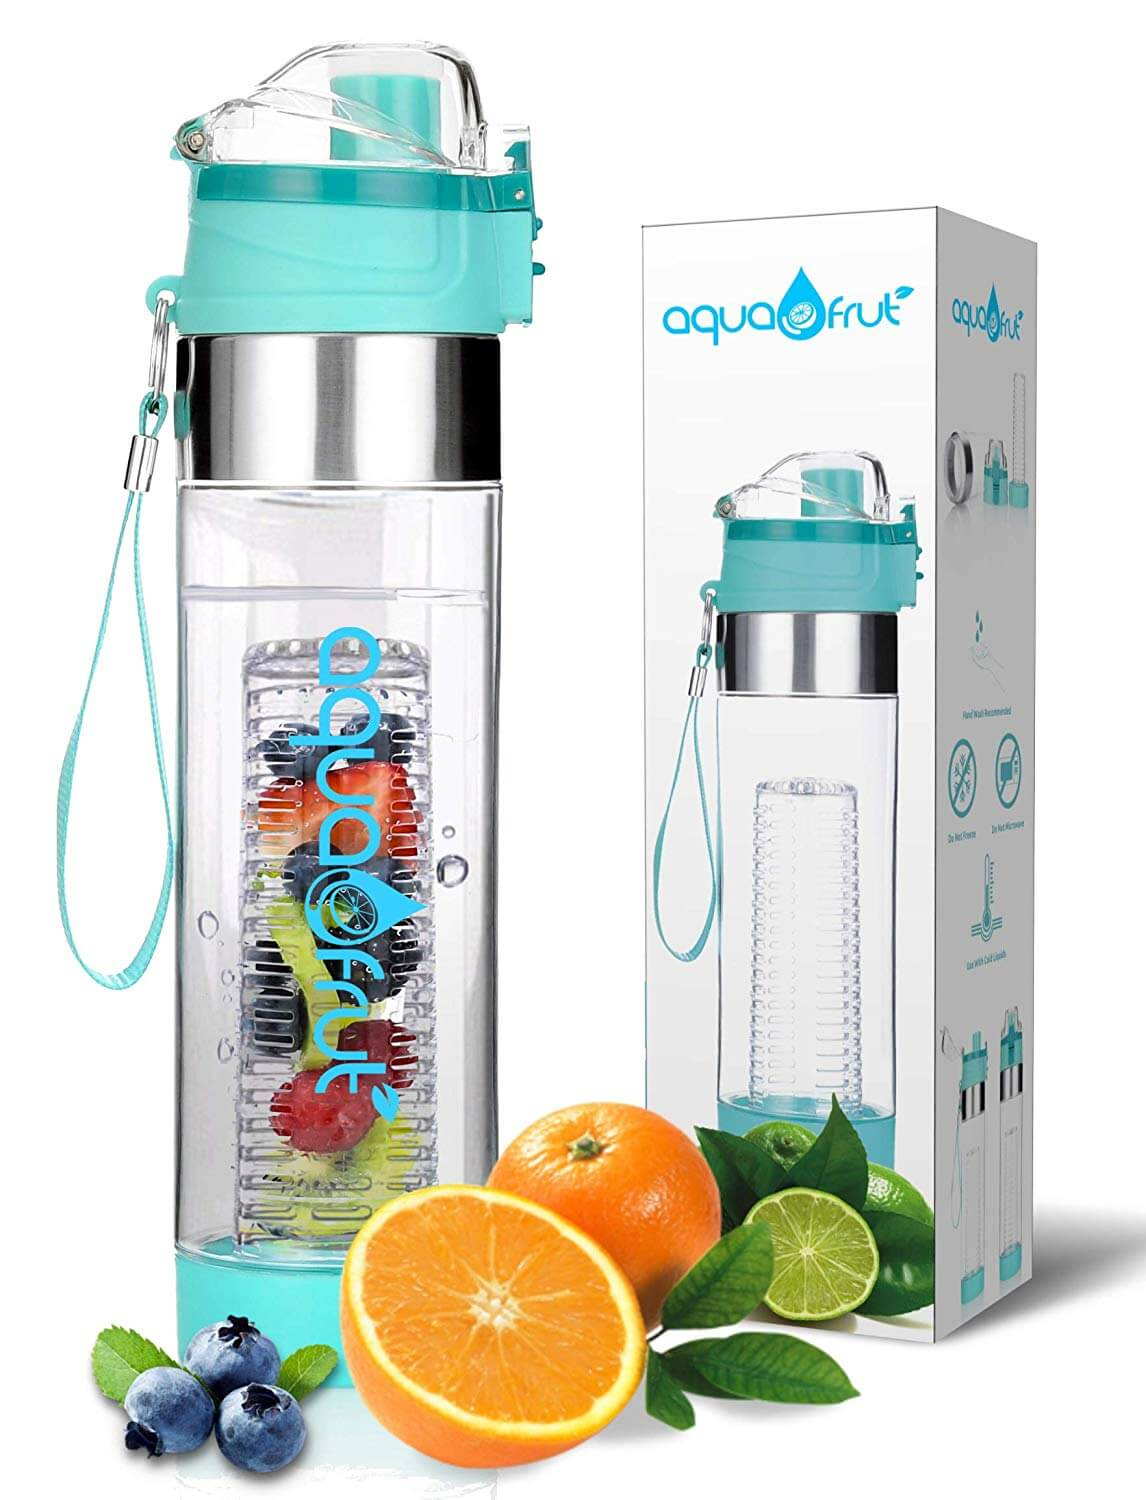 NEW Improved Unique Bottom Loading Fruit Infuser Water Bottle By Aquafrut Bottle